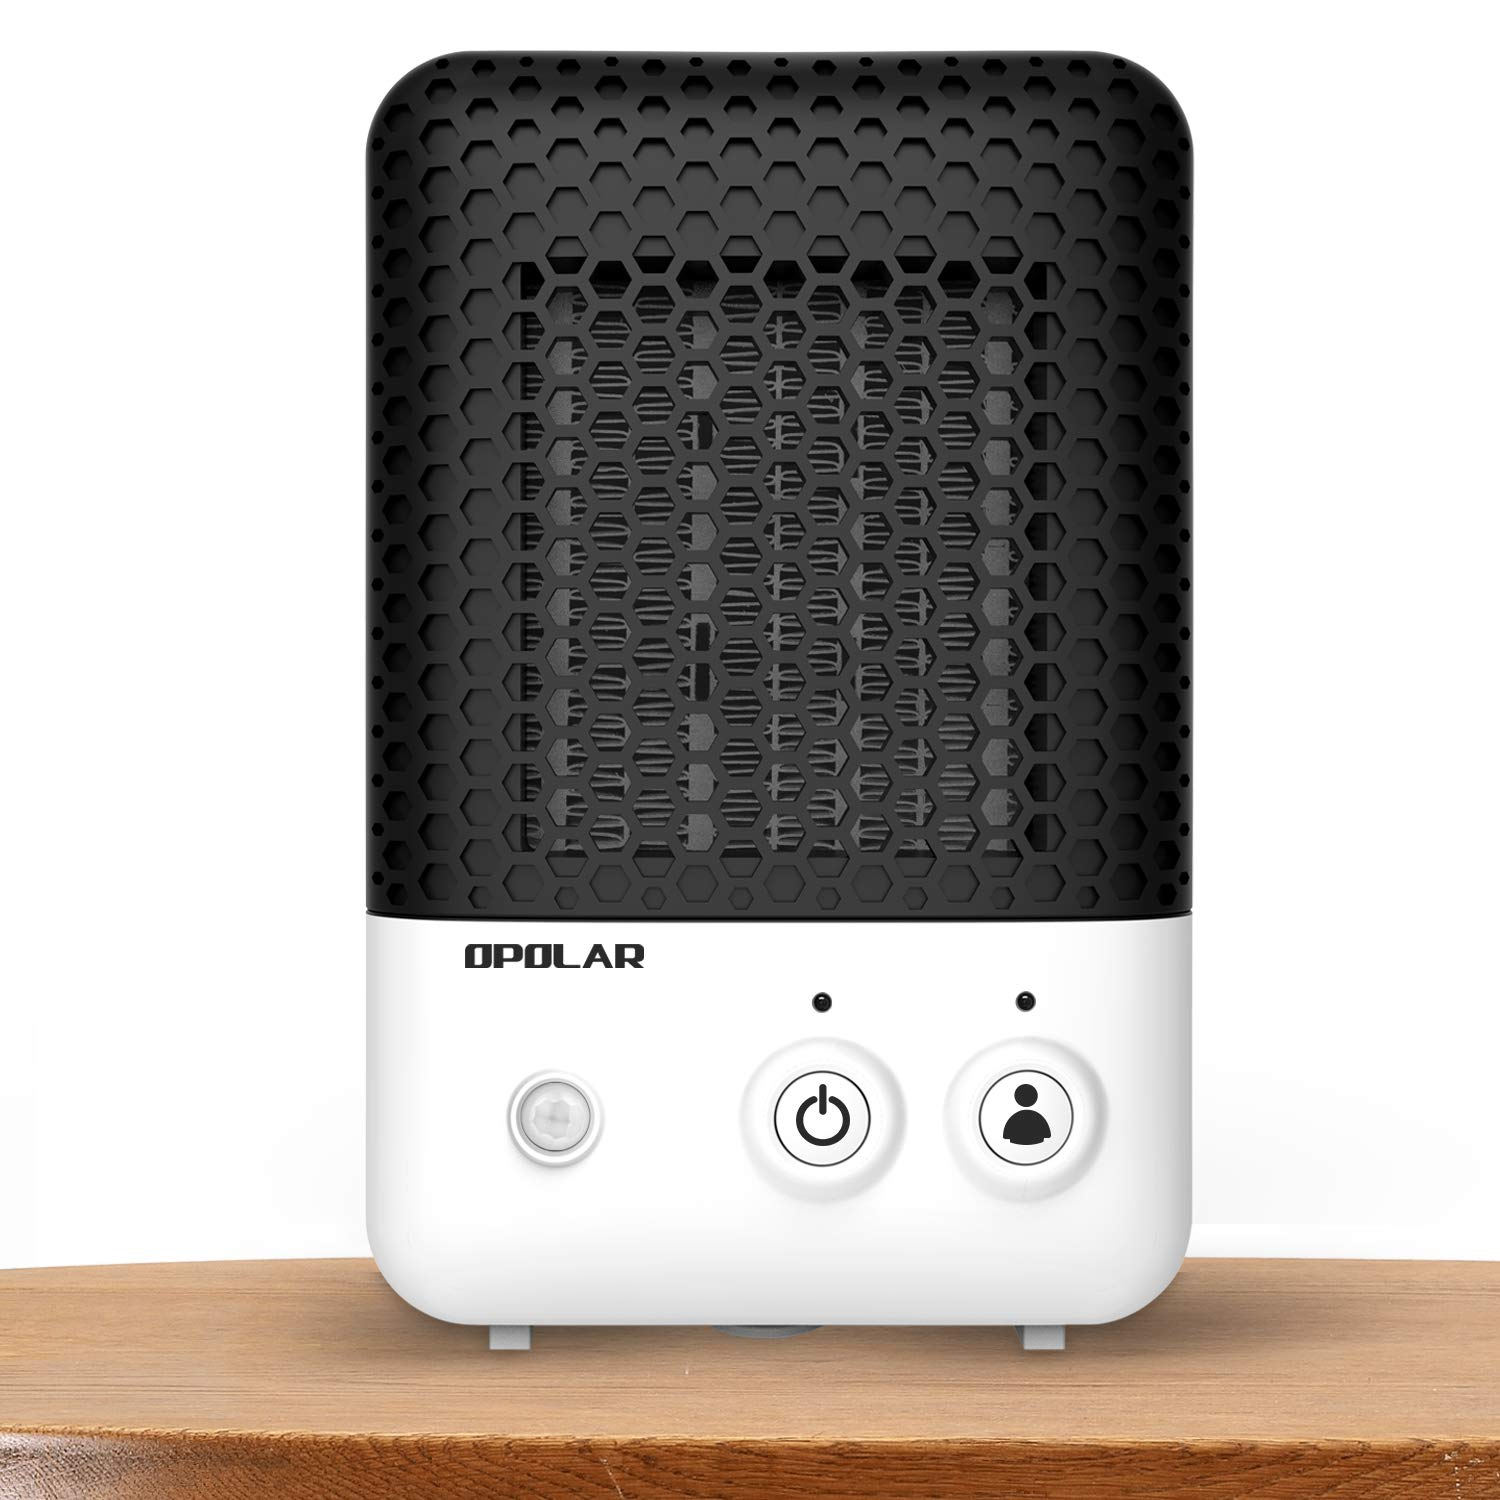 CDM product OPOLAR Mini Ceramic Heater with Infrared Human Sensor Feature, 600 W Heating for Small Room, Office,Desk,Personal or Other Cubic Space,Powerful and Portable, Stylish and Silent, ETL Approved big image